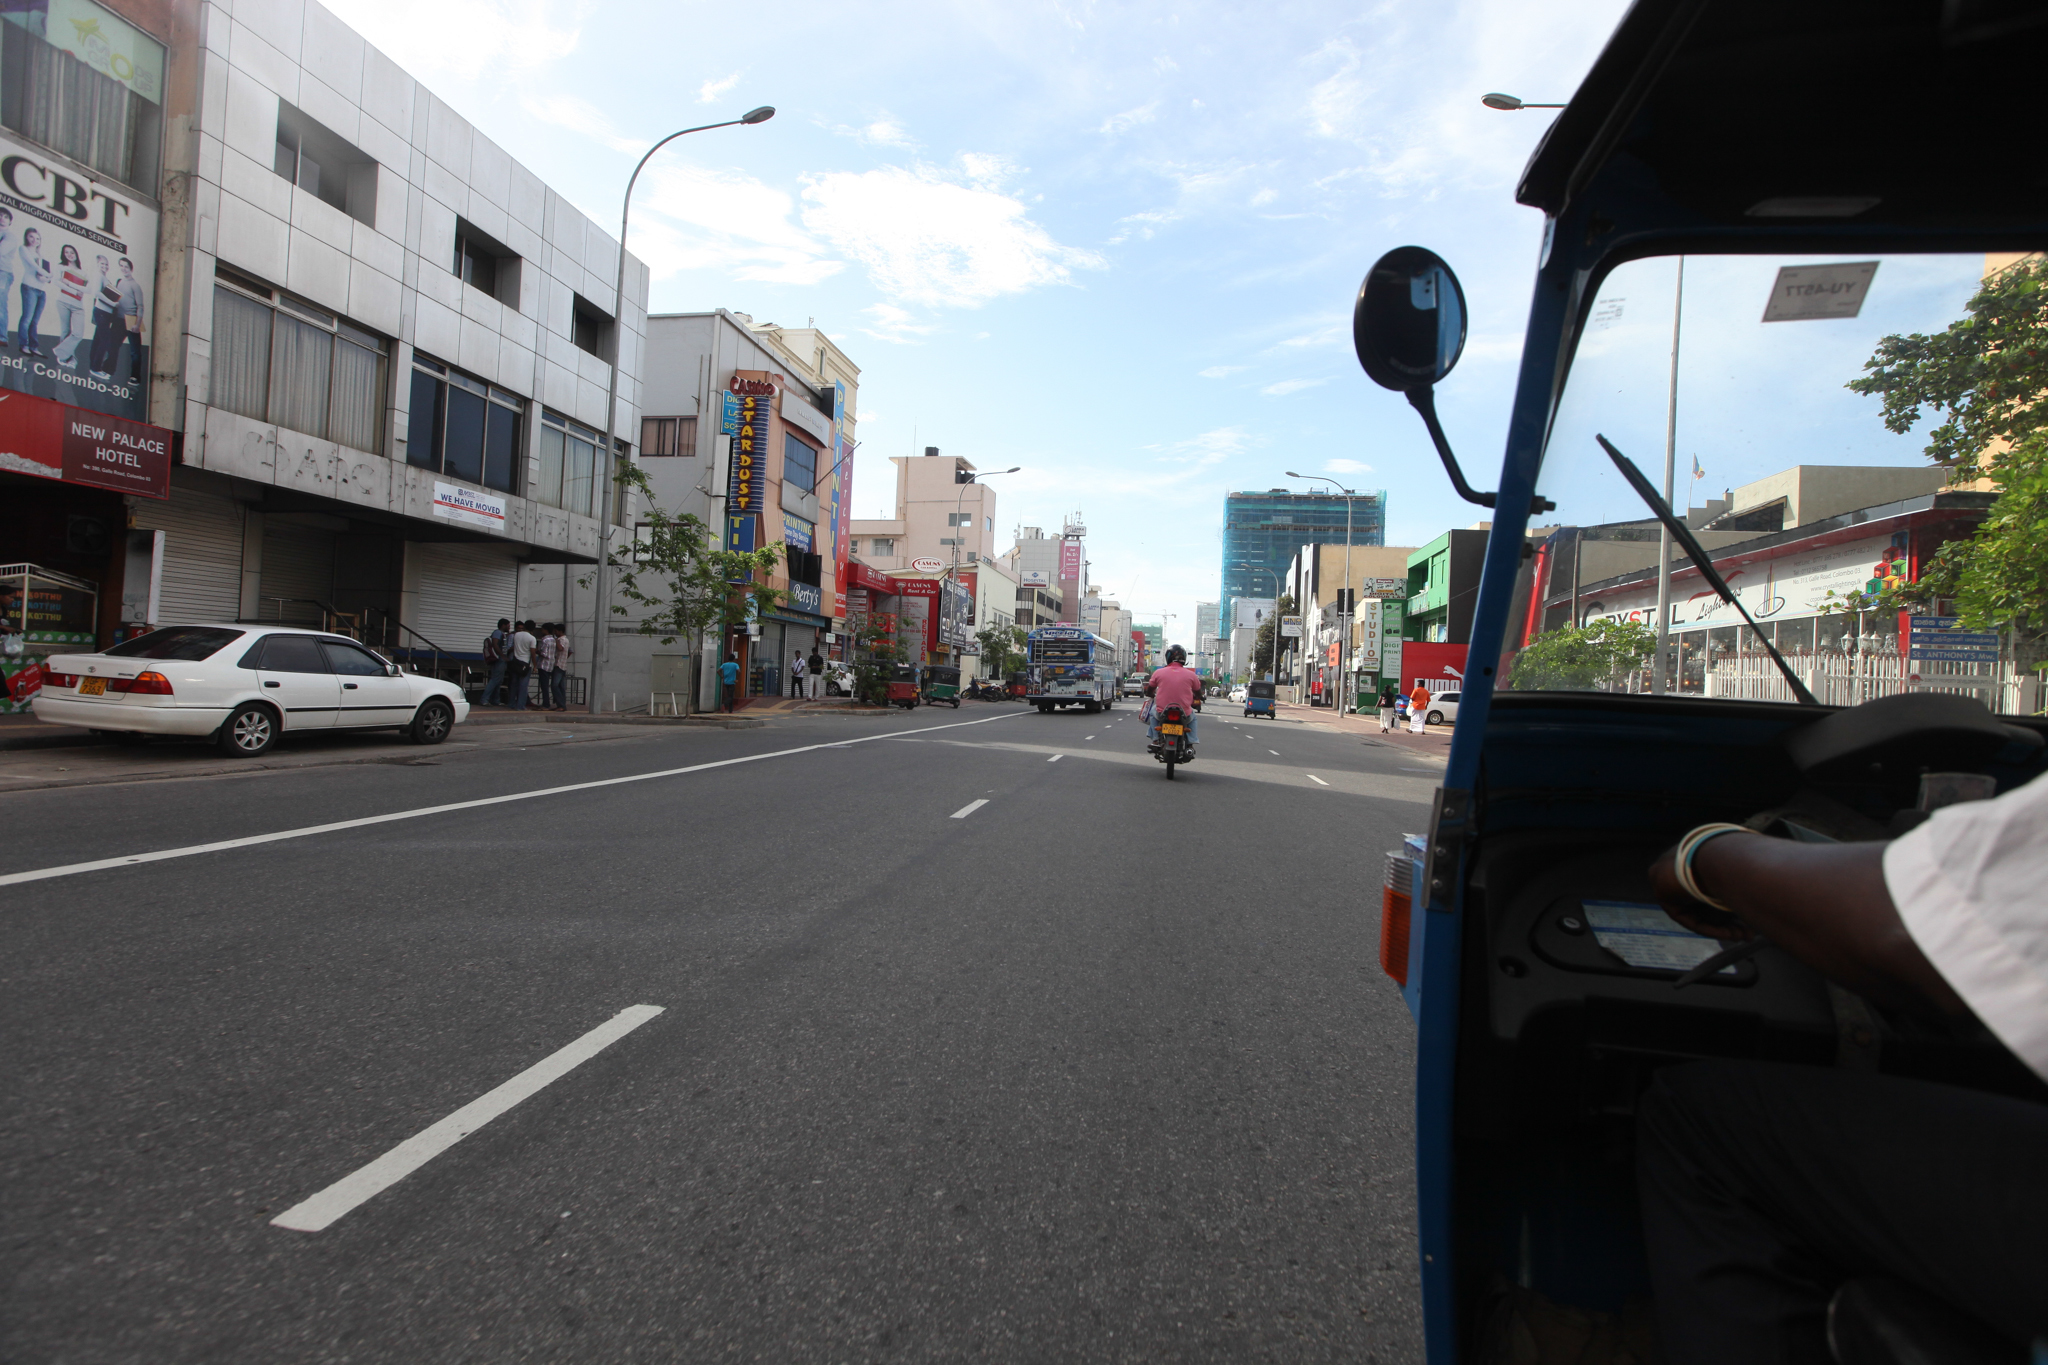 A 'tuk tuk' ride around Colombo